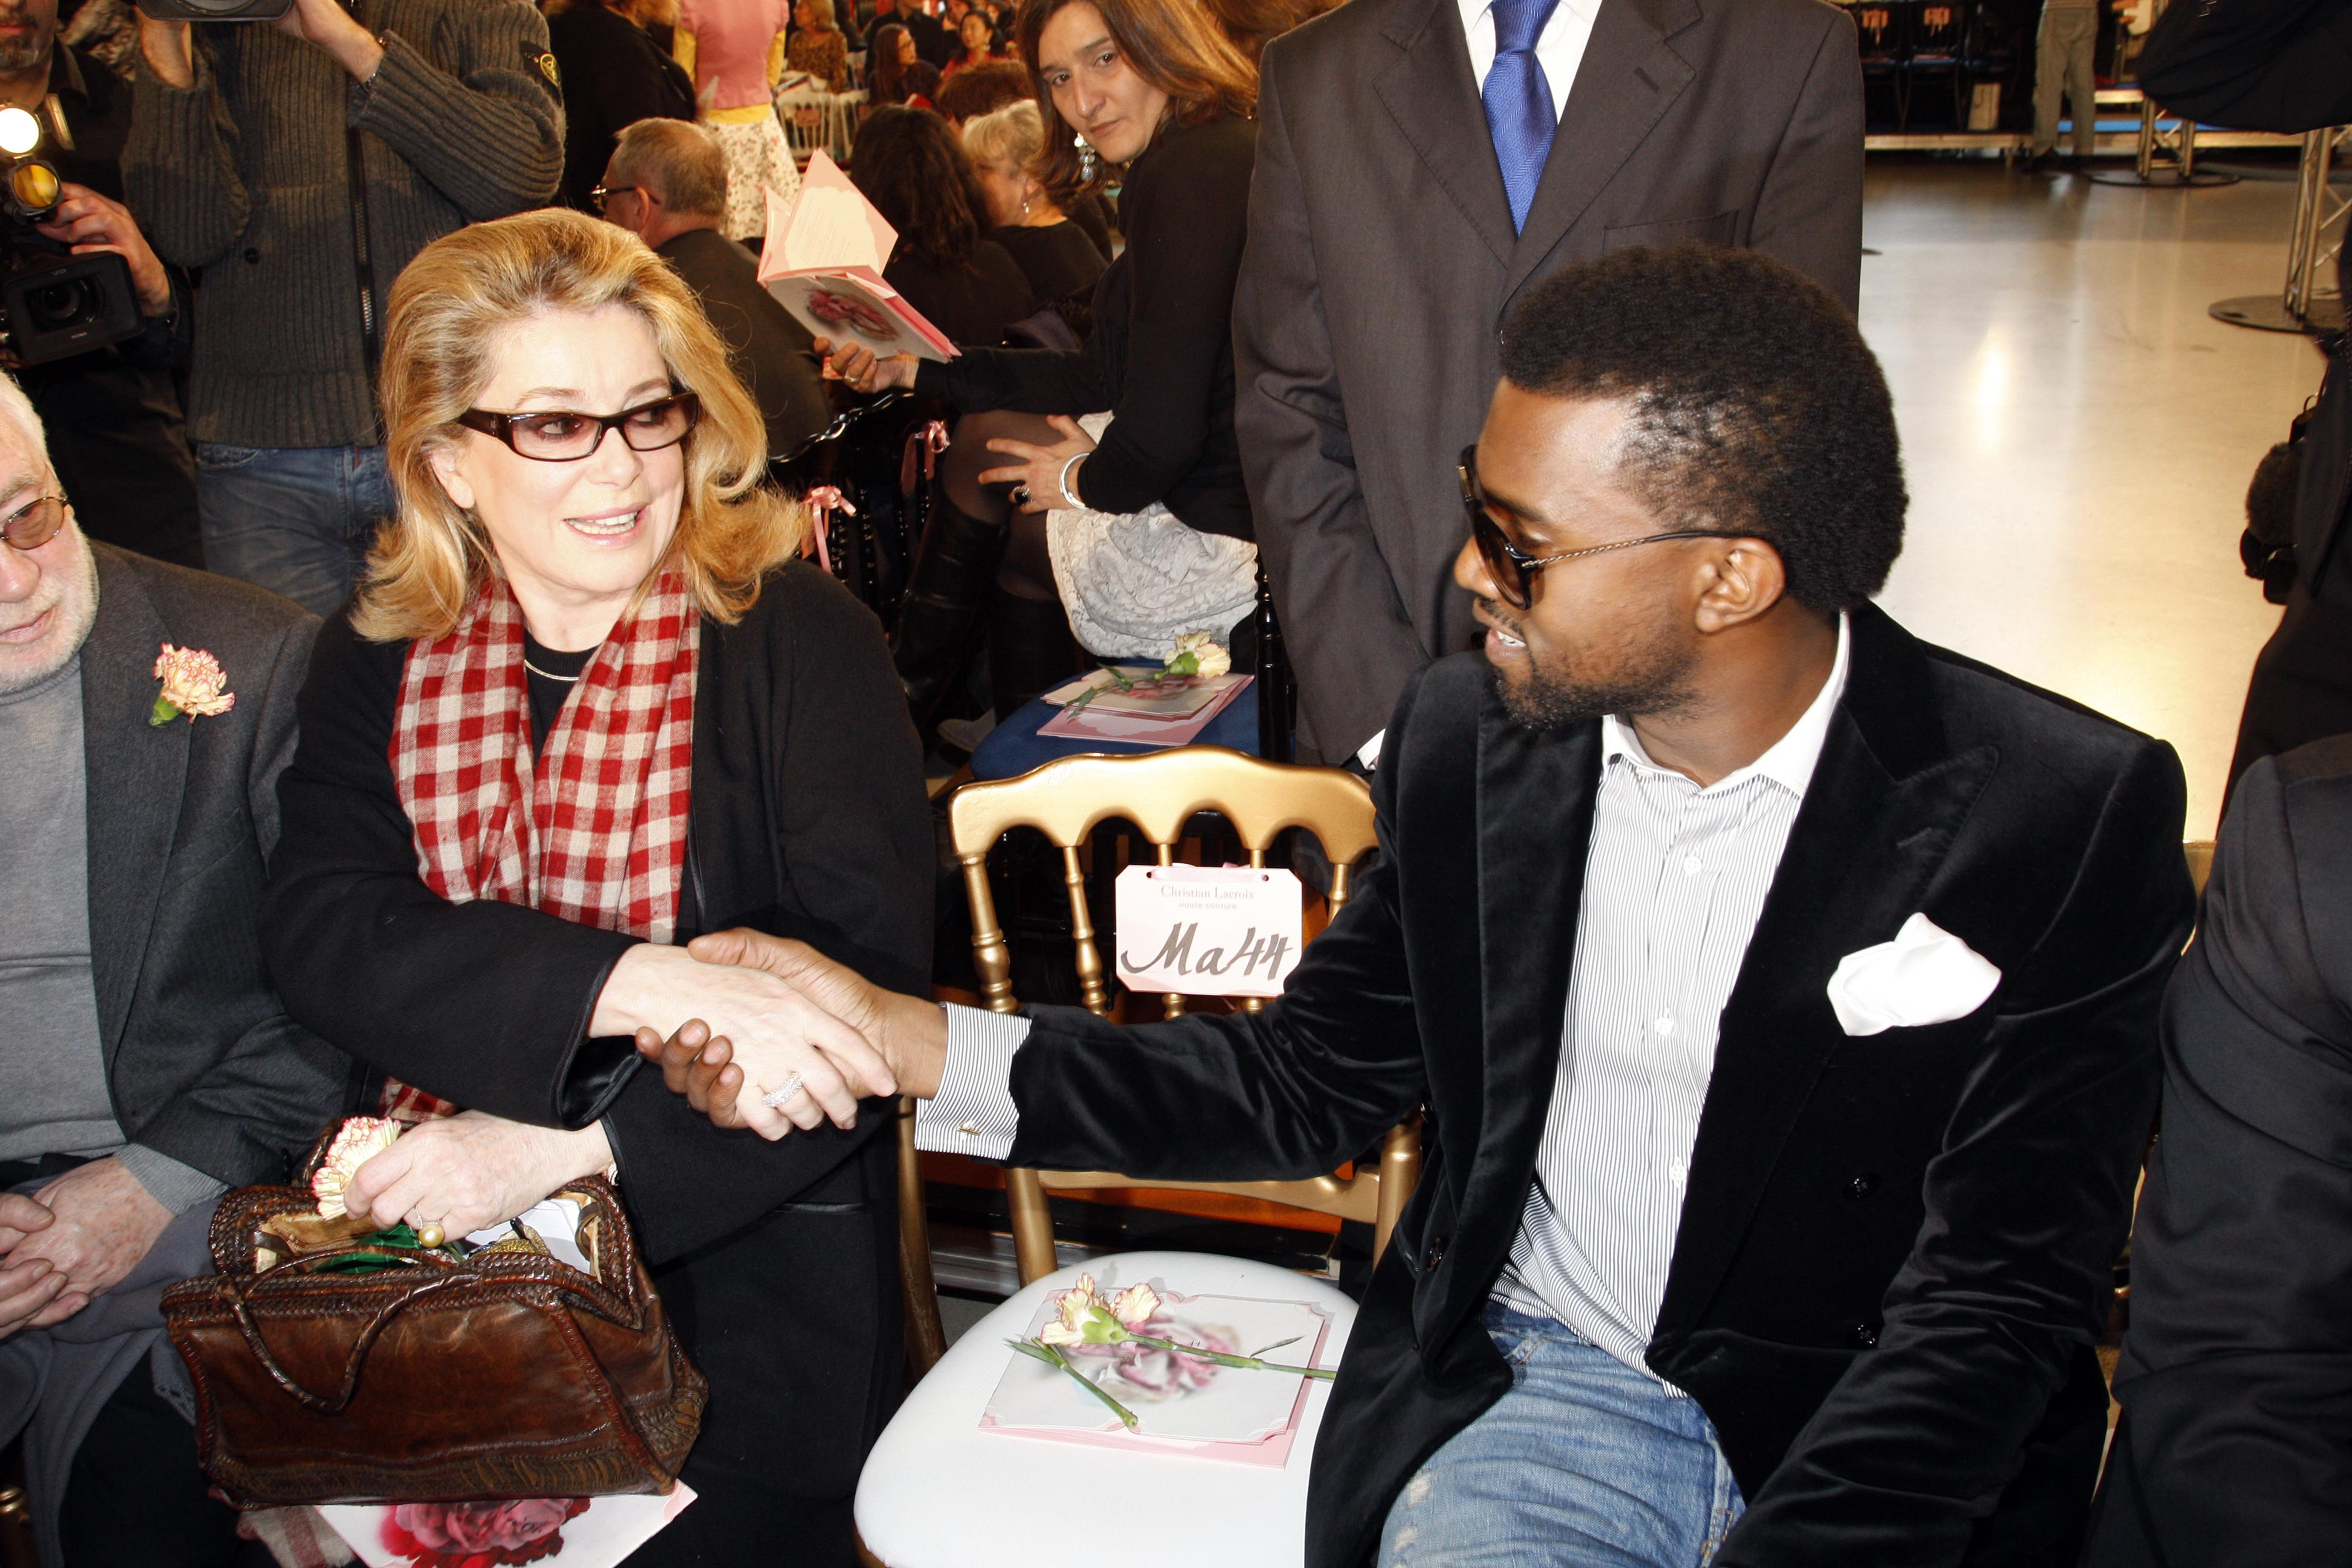 Catherine Deneuve and Kanye West at the Christian Lacroix Spring 2009 couture show.